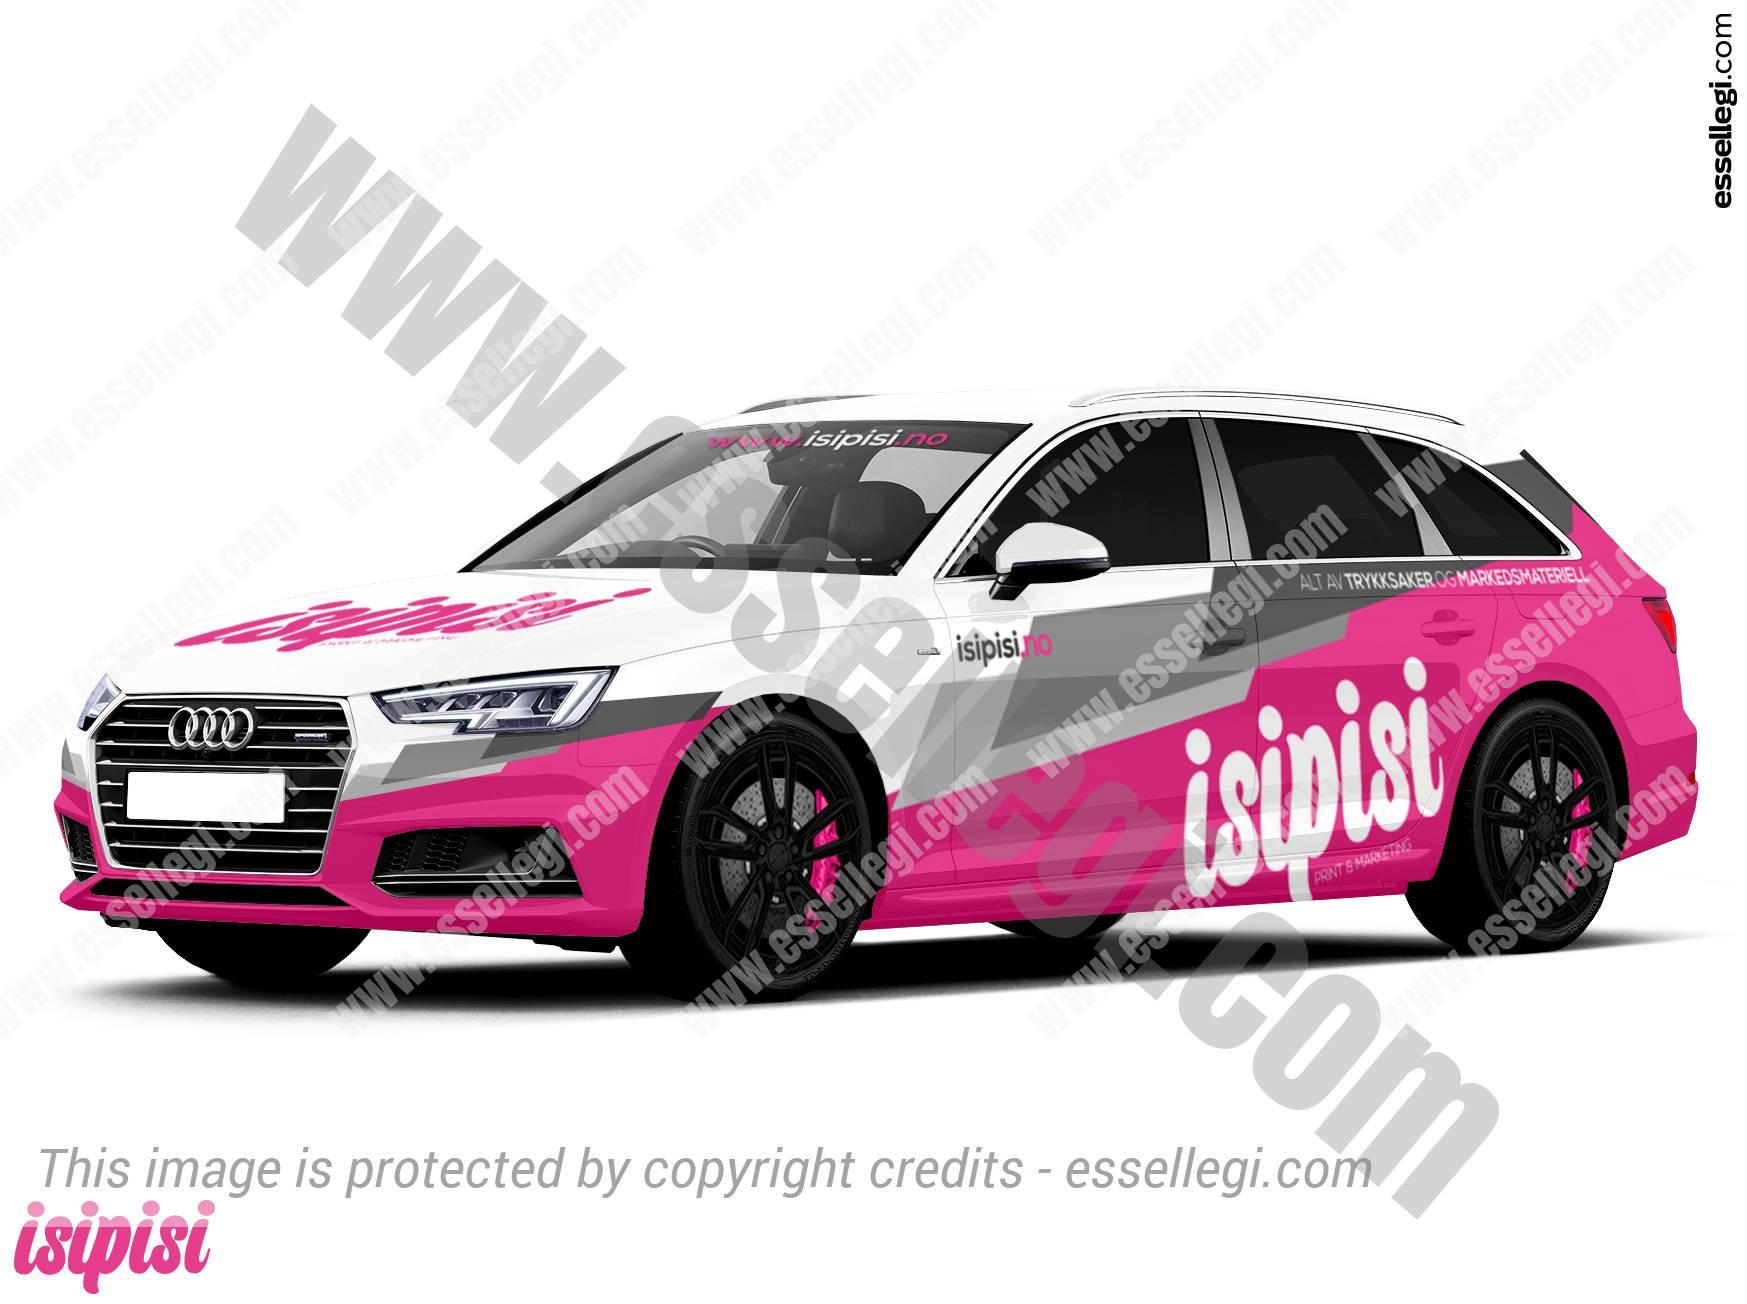 audi a4 avant car wrap design by essellegi wrap design. Black Bedroom Furniture Sets. Home Design Ideas